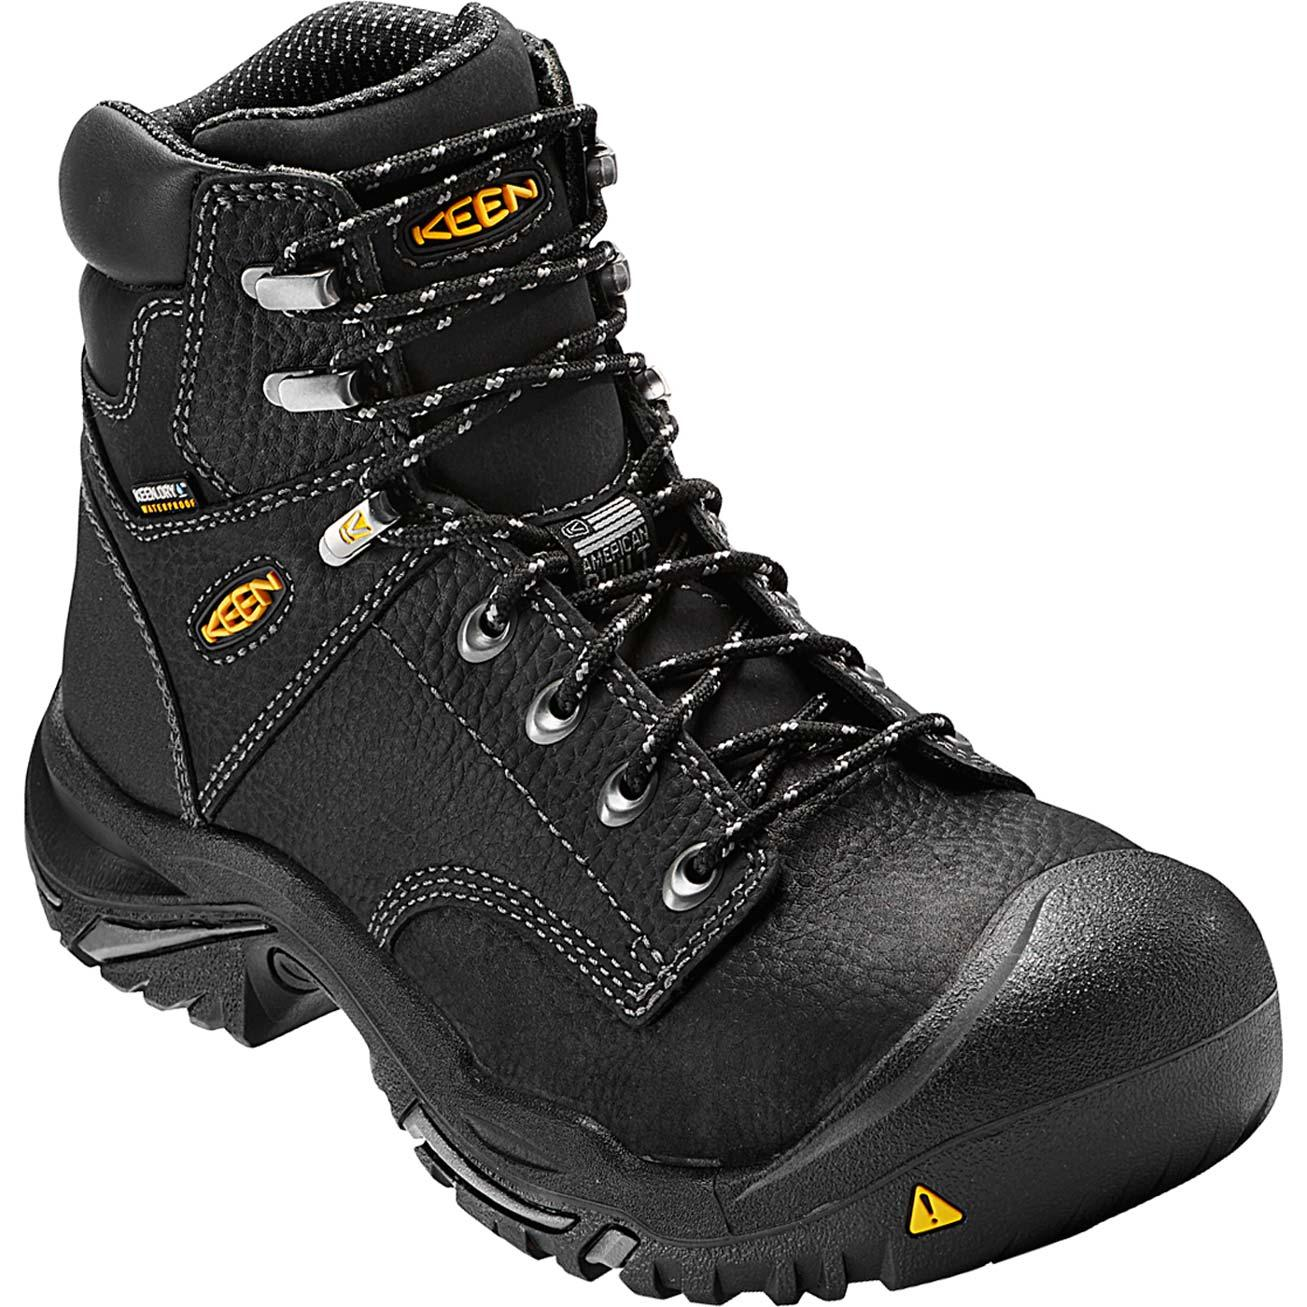 1e5bffac5c5 KEEN Utility® Mt Vernon Steel Toe Waterproof Work BootKEEN Utility® Mt  Vernon Steel Toe Waterproof Work Boot